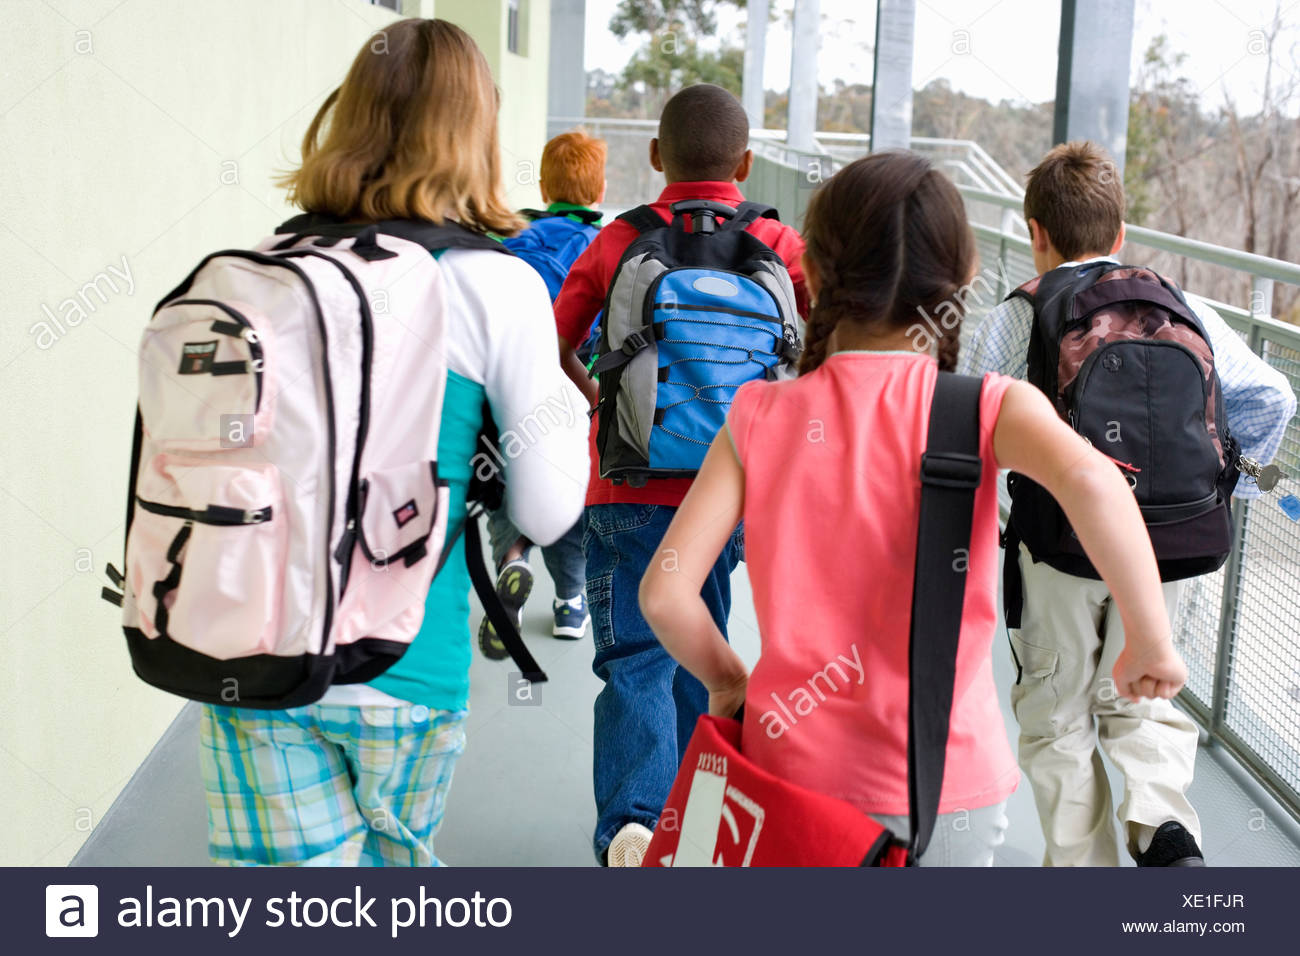 School children 10-12 with rucksacks, rear view - Stock Image